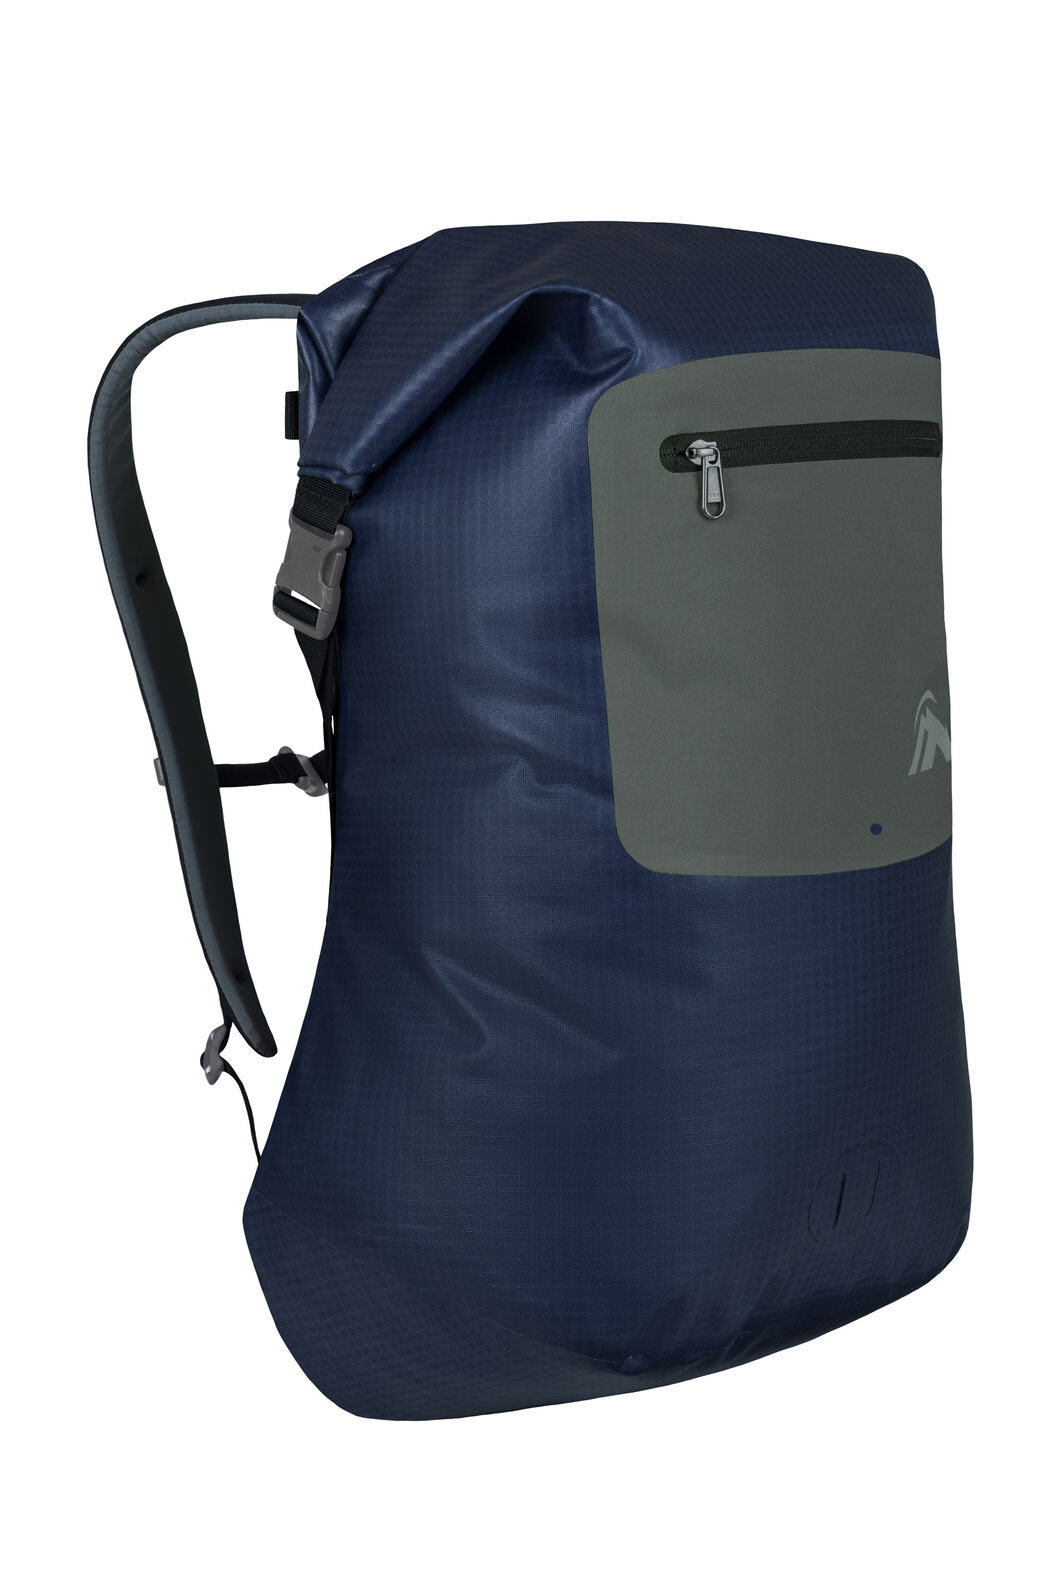 Macpac Weta 24L Commuter Pack, Navy, hi-res